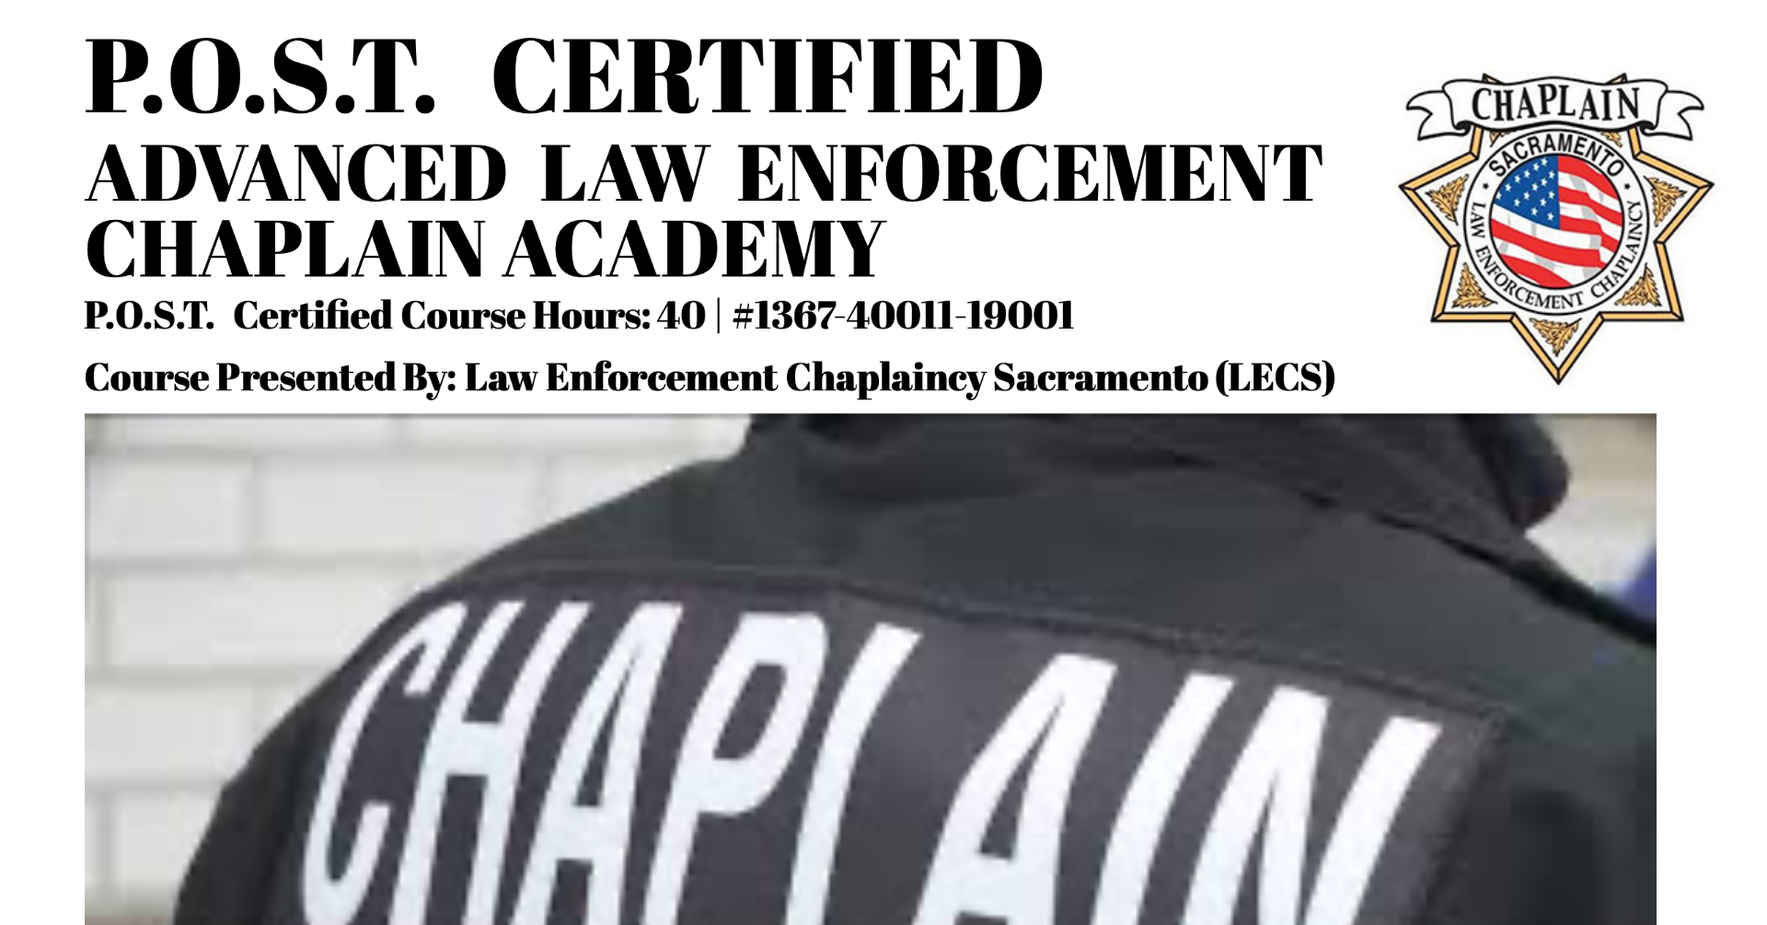 P.O.S.T. Advanced Law Enforcement Chaplain Training image